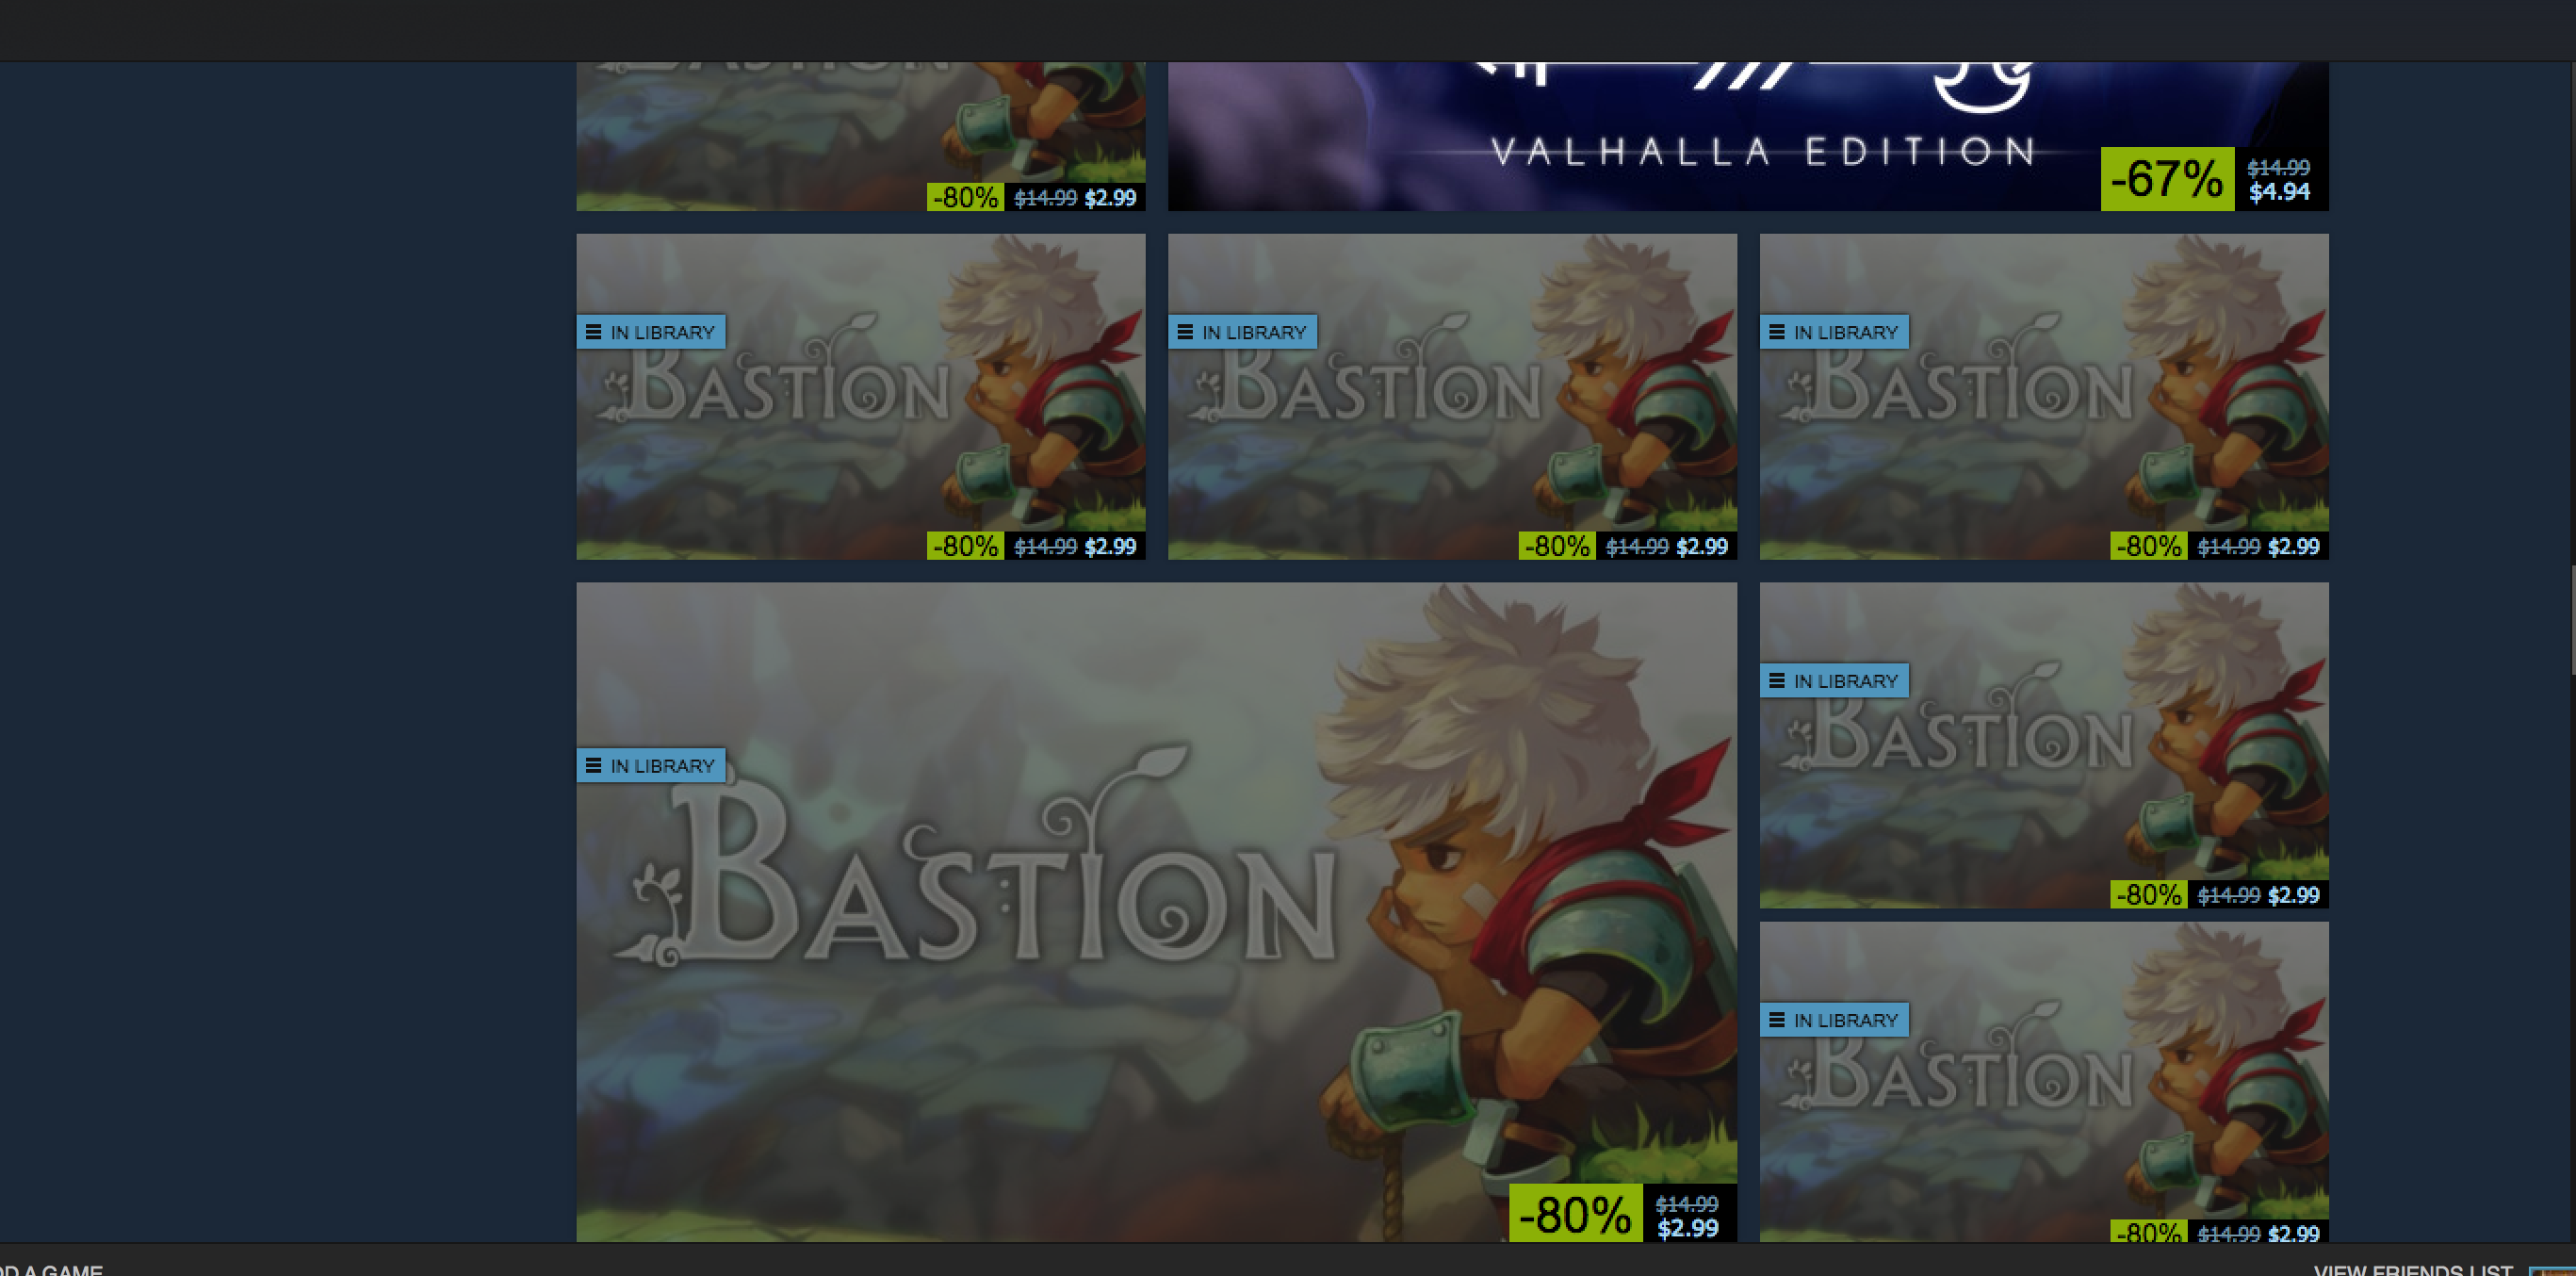 Just making sure I know that the game I own is on sale.